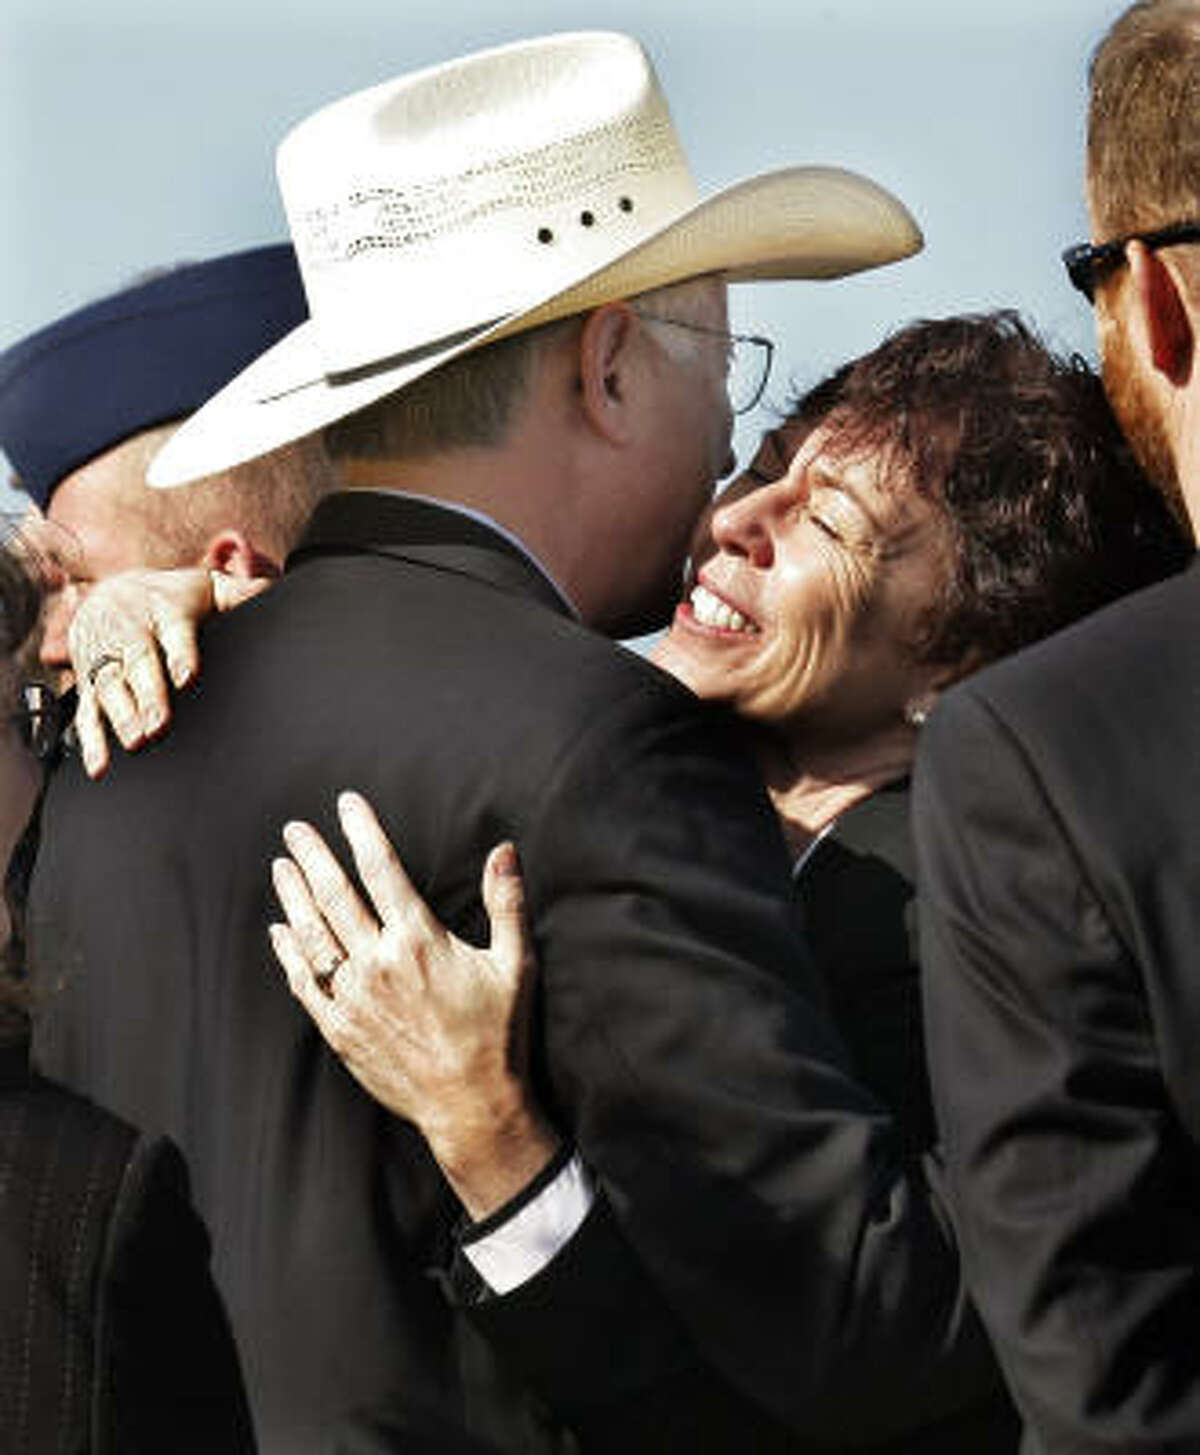 Deborah Borza, mother of Flight 93 passenger Deora Bodley, right, hugs Secretary of the Interior Ken Salazar after the ground breaking for the Flight 93 National Memorial Saturday, Nov. 7, 2009 in Shanksville, Pa..